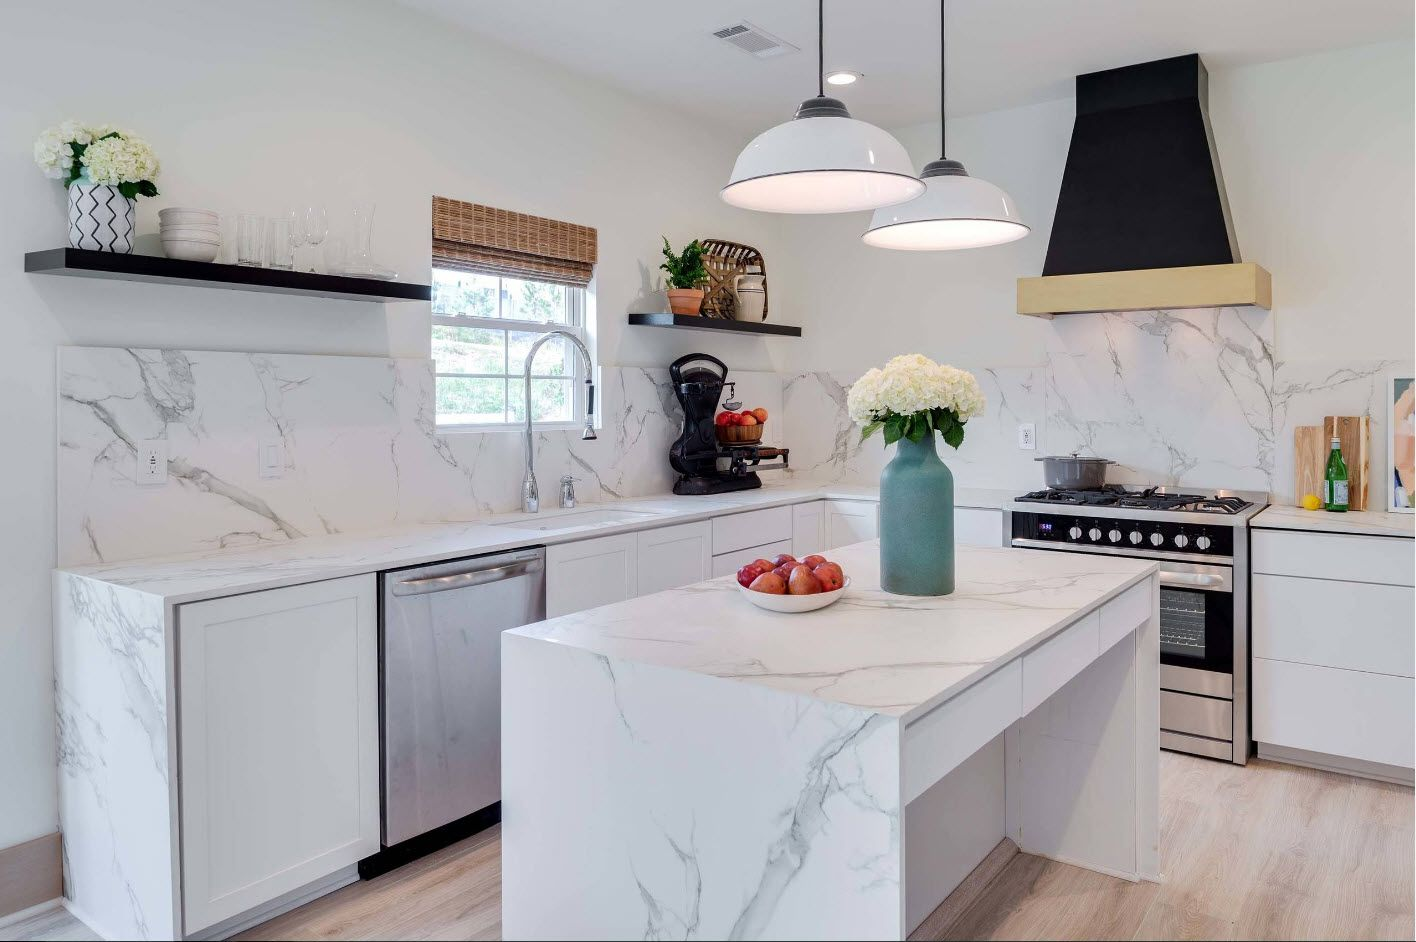 40 Square Feet Kitchen Modern Design Ideas & Layout Types. Marble streaked countertop